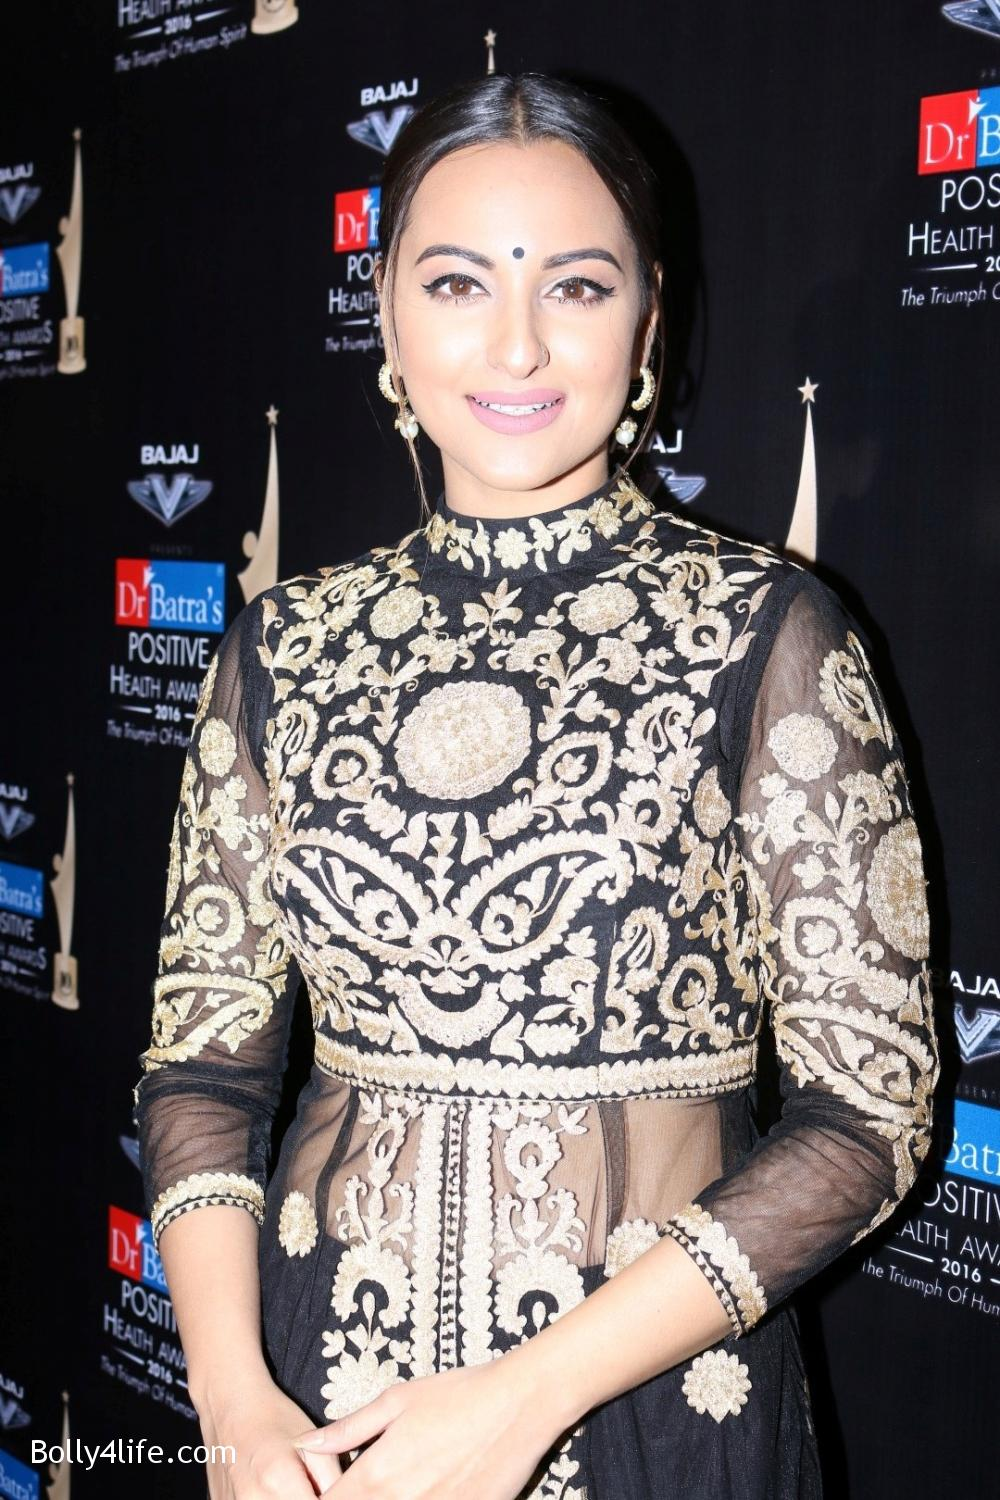 Sonakshi-Sinha-during-Dr-Batras-Positive-Health-Awards-2016-1.jpg